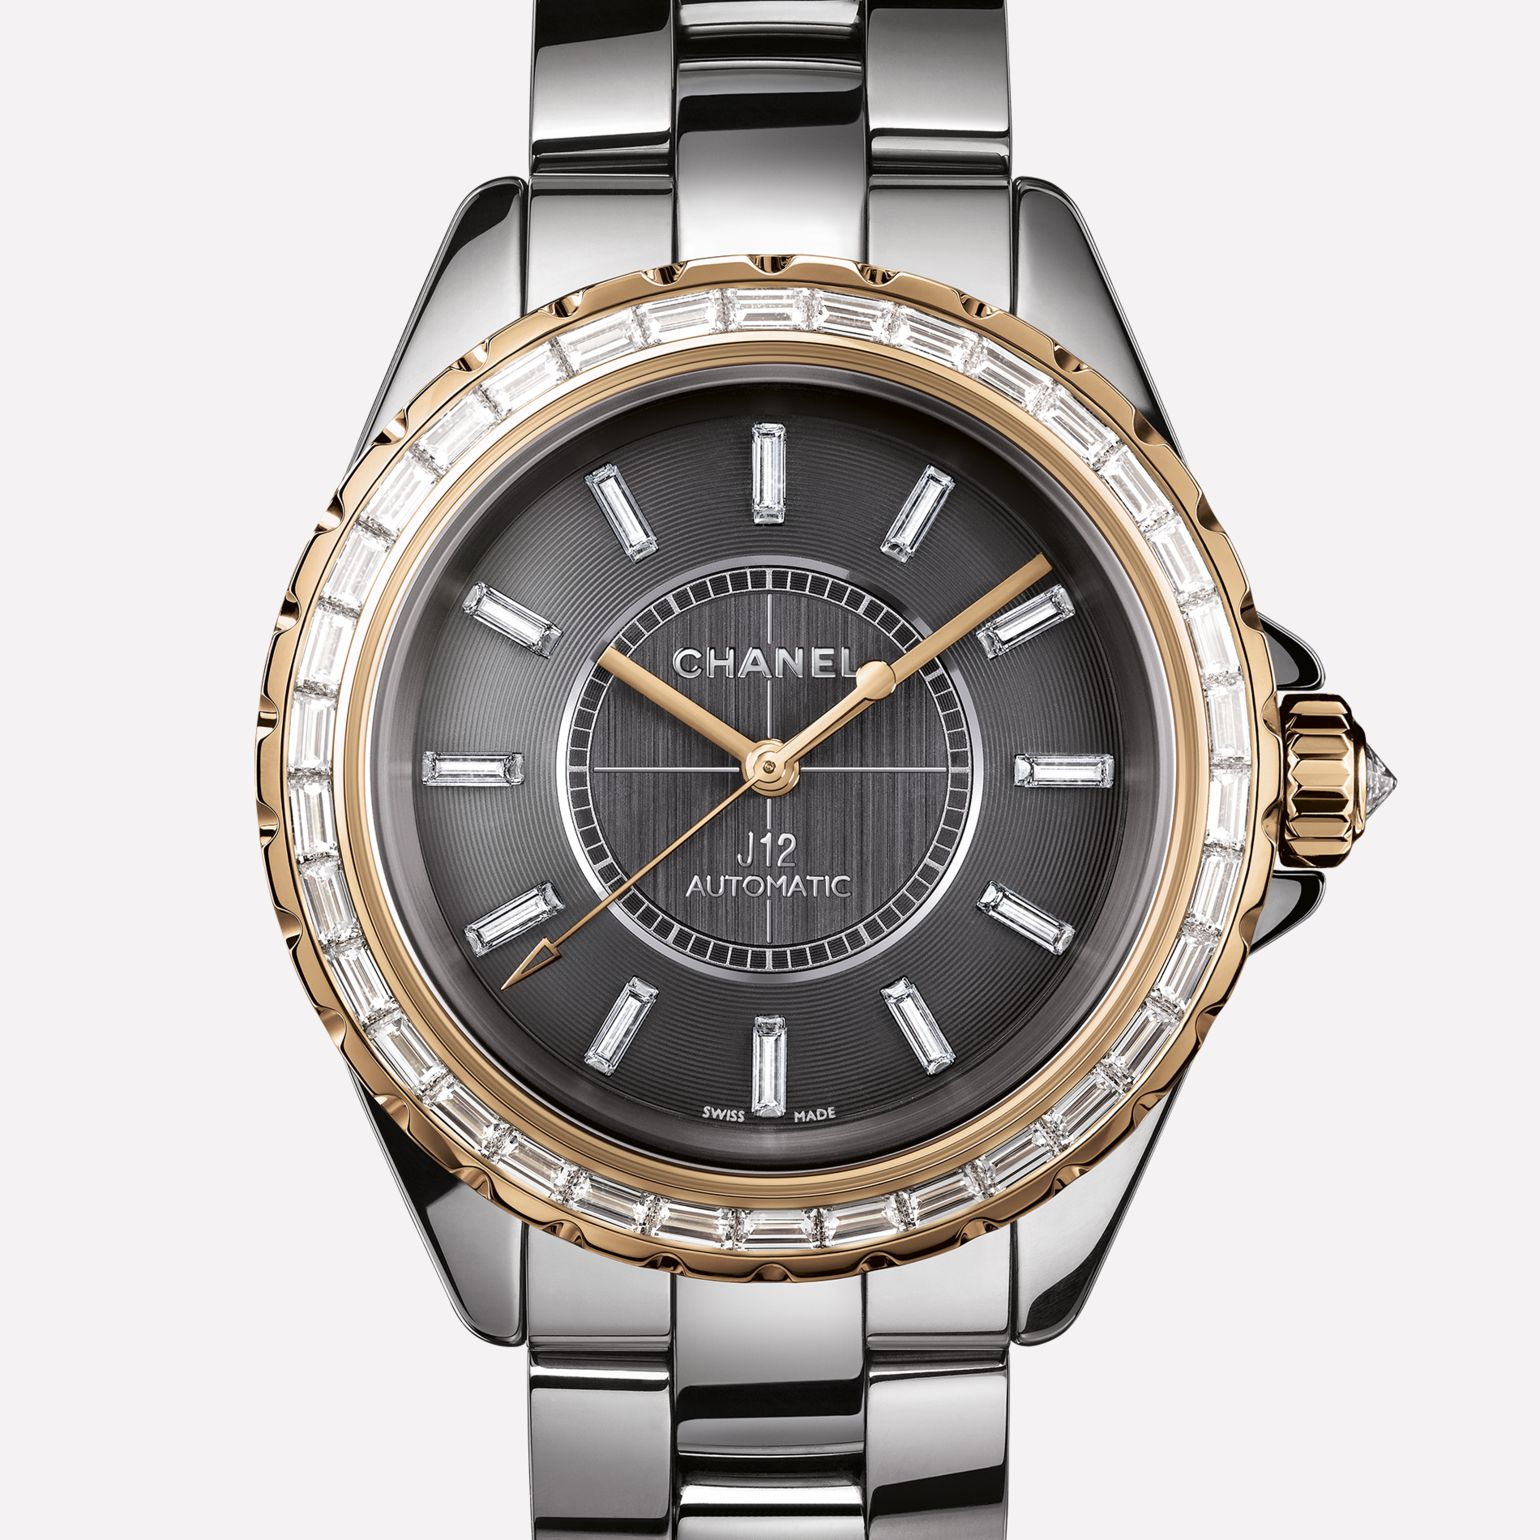 J12 Jewelry Watch Titanium ceramic and BEIGE GOLD, baguette-cut diamond bezel and indicators